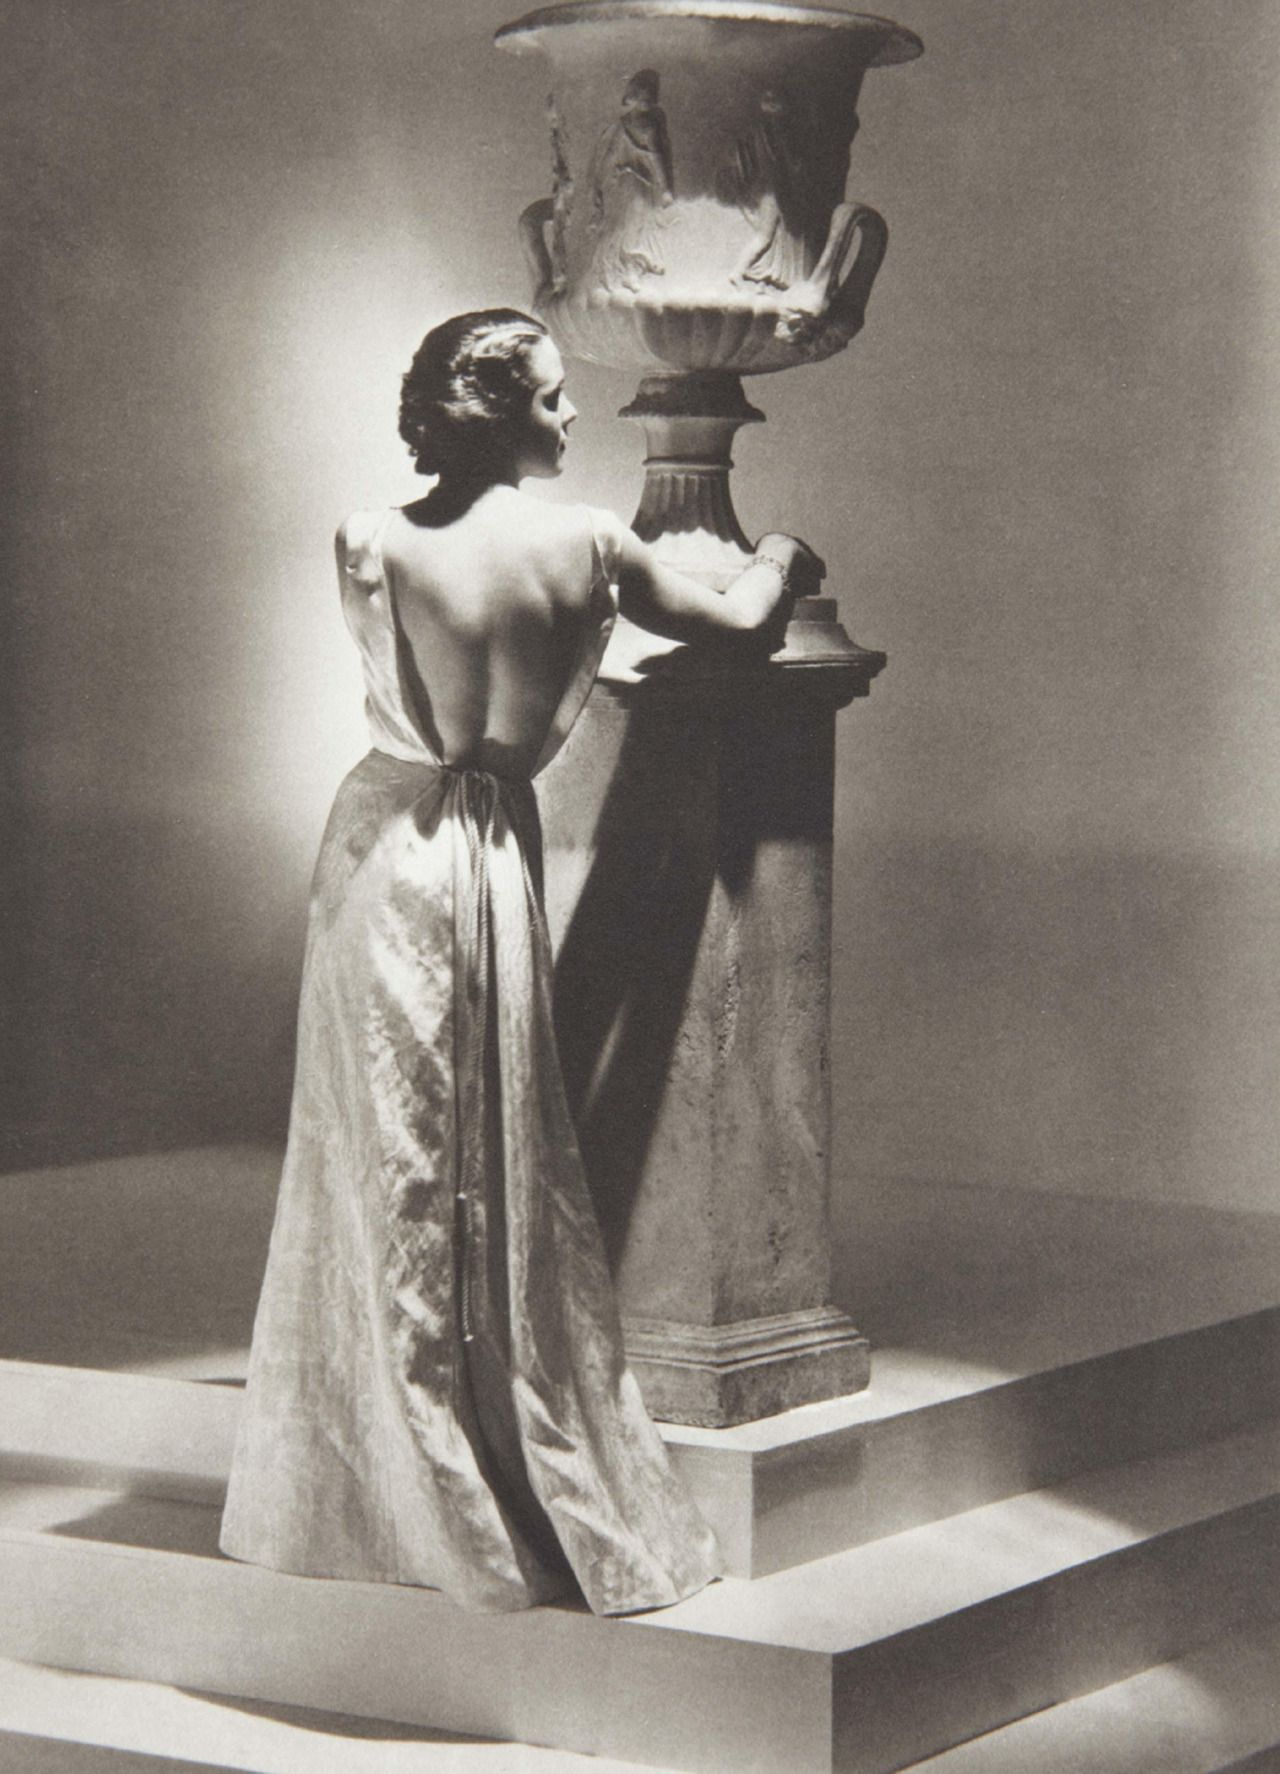 Evening dress by Elsa Schiaparelli, 1934.